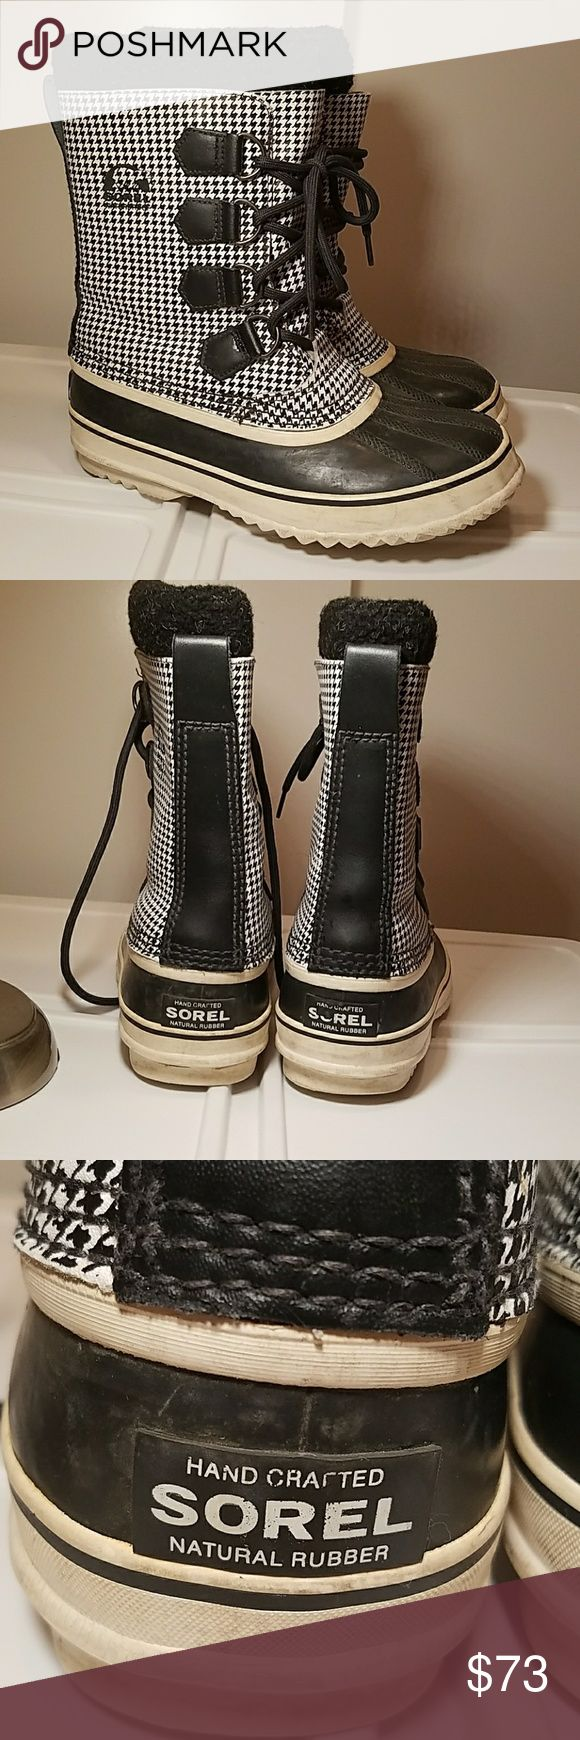 Sorel waterproof boots SOREL wateeproof winter boots rubber sole black and white checker, upper felt liner, used but still in great condition! Sorel Shoes Winter & Rain Boots